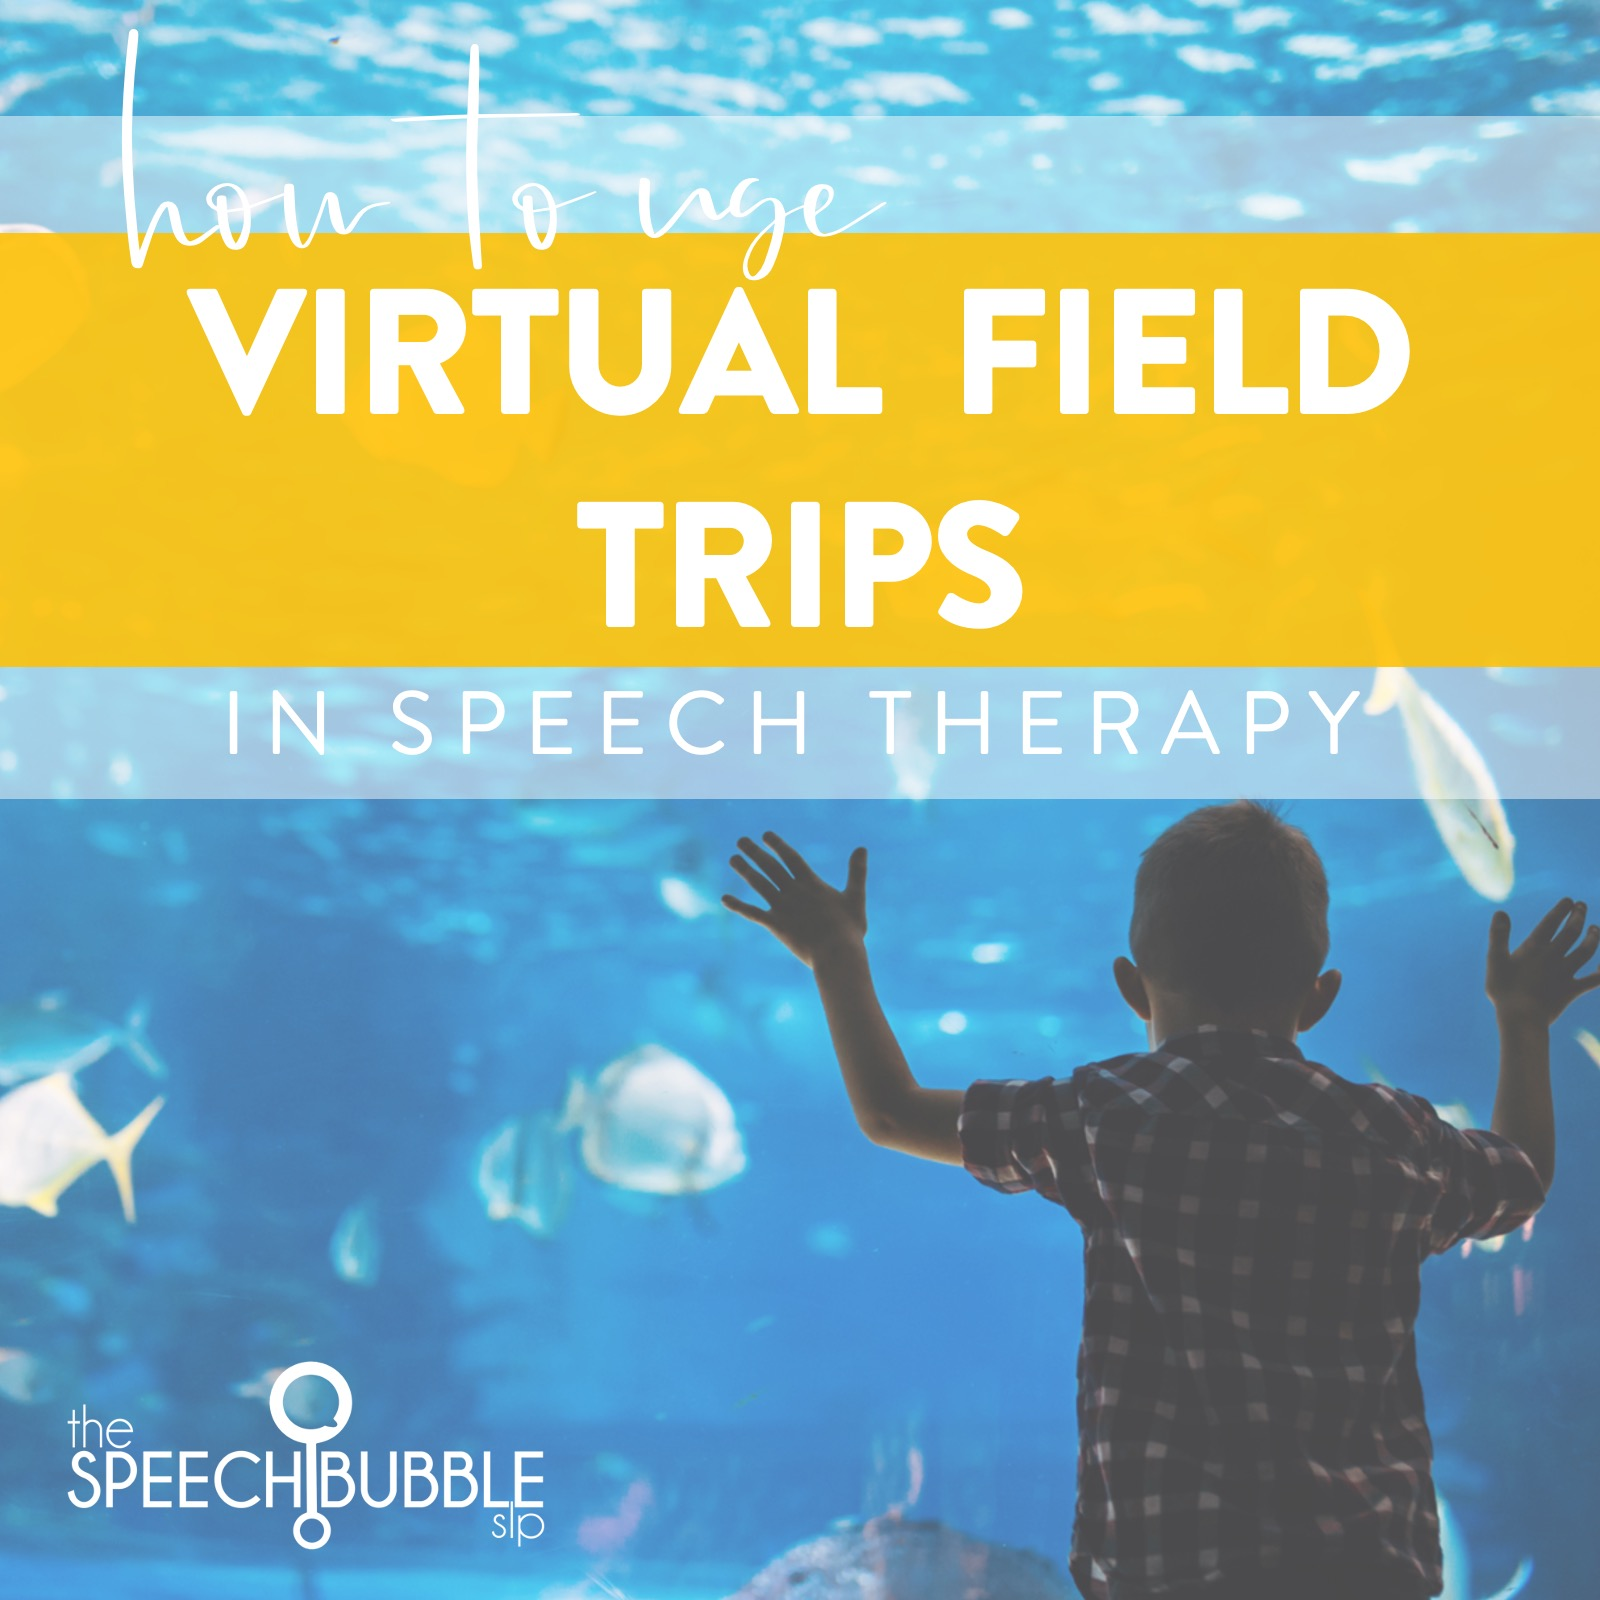 Virtual Field Trips in Speech Therapy